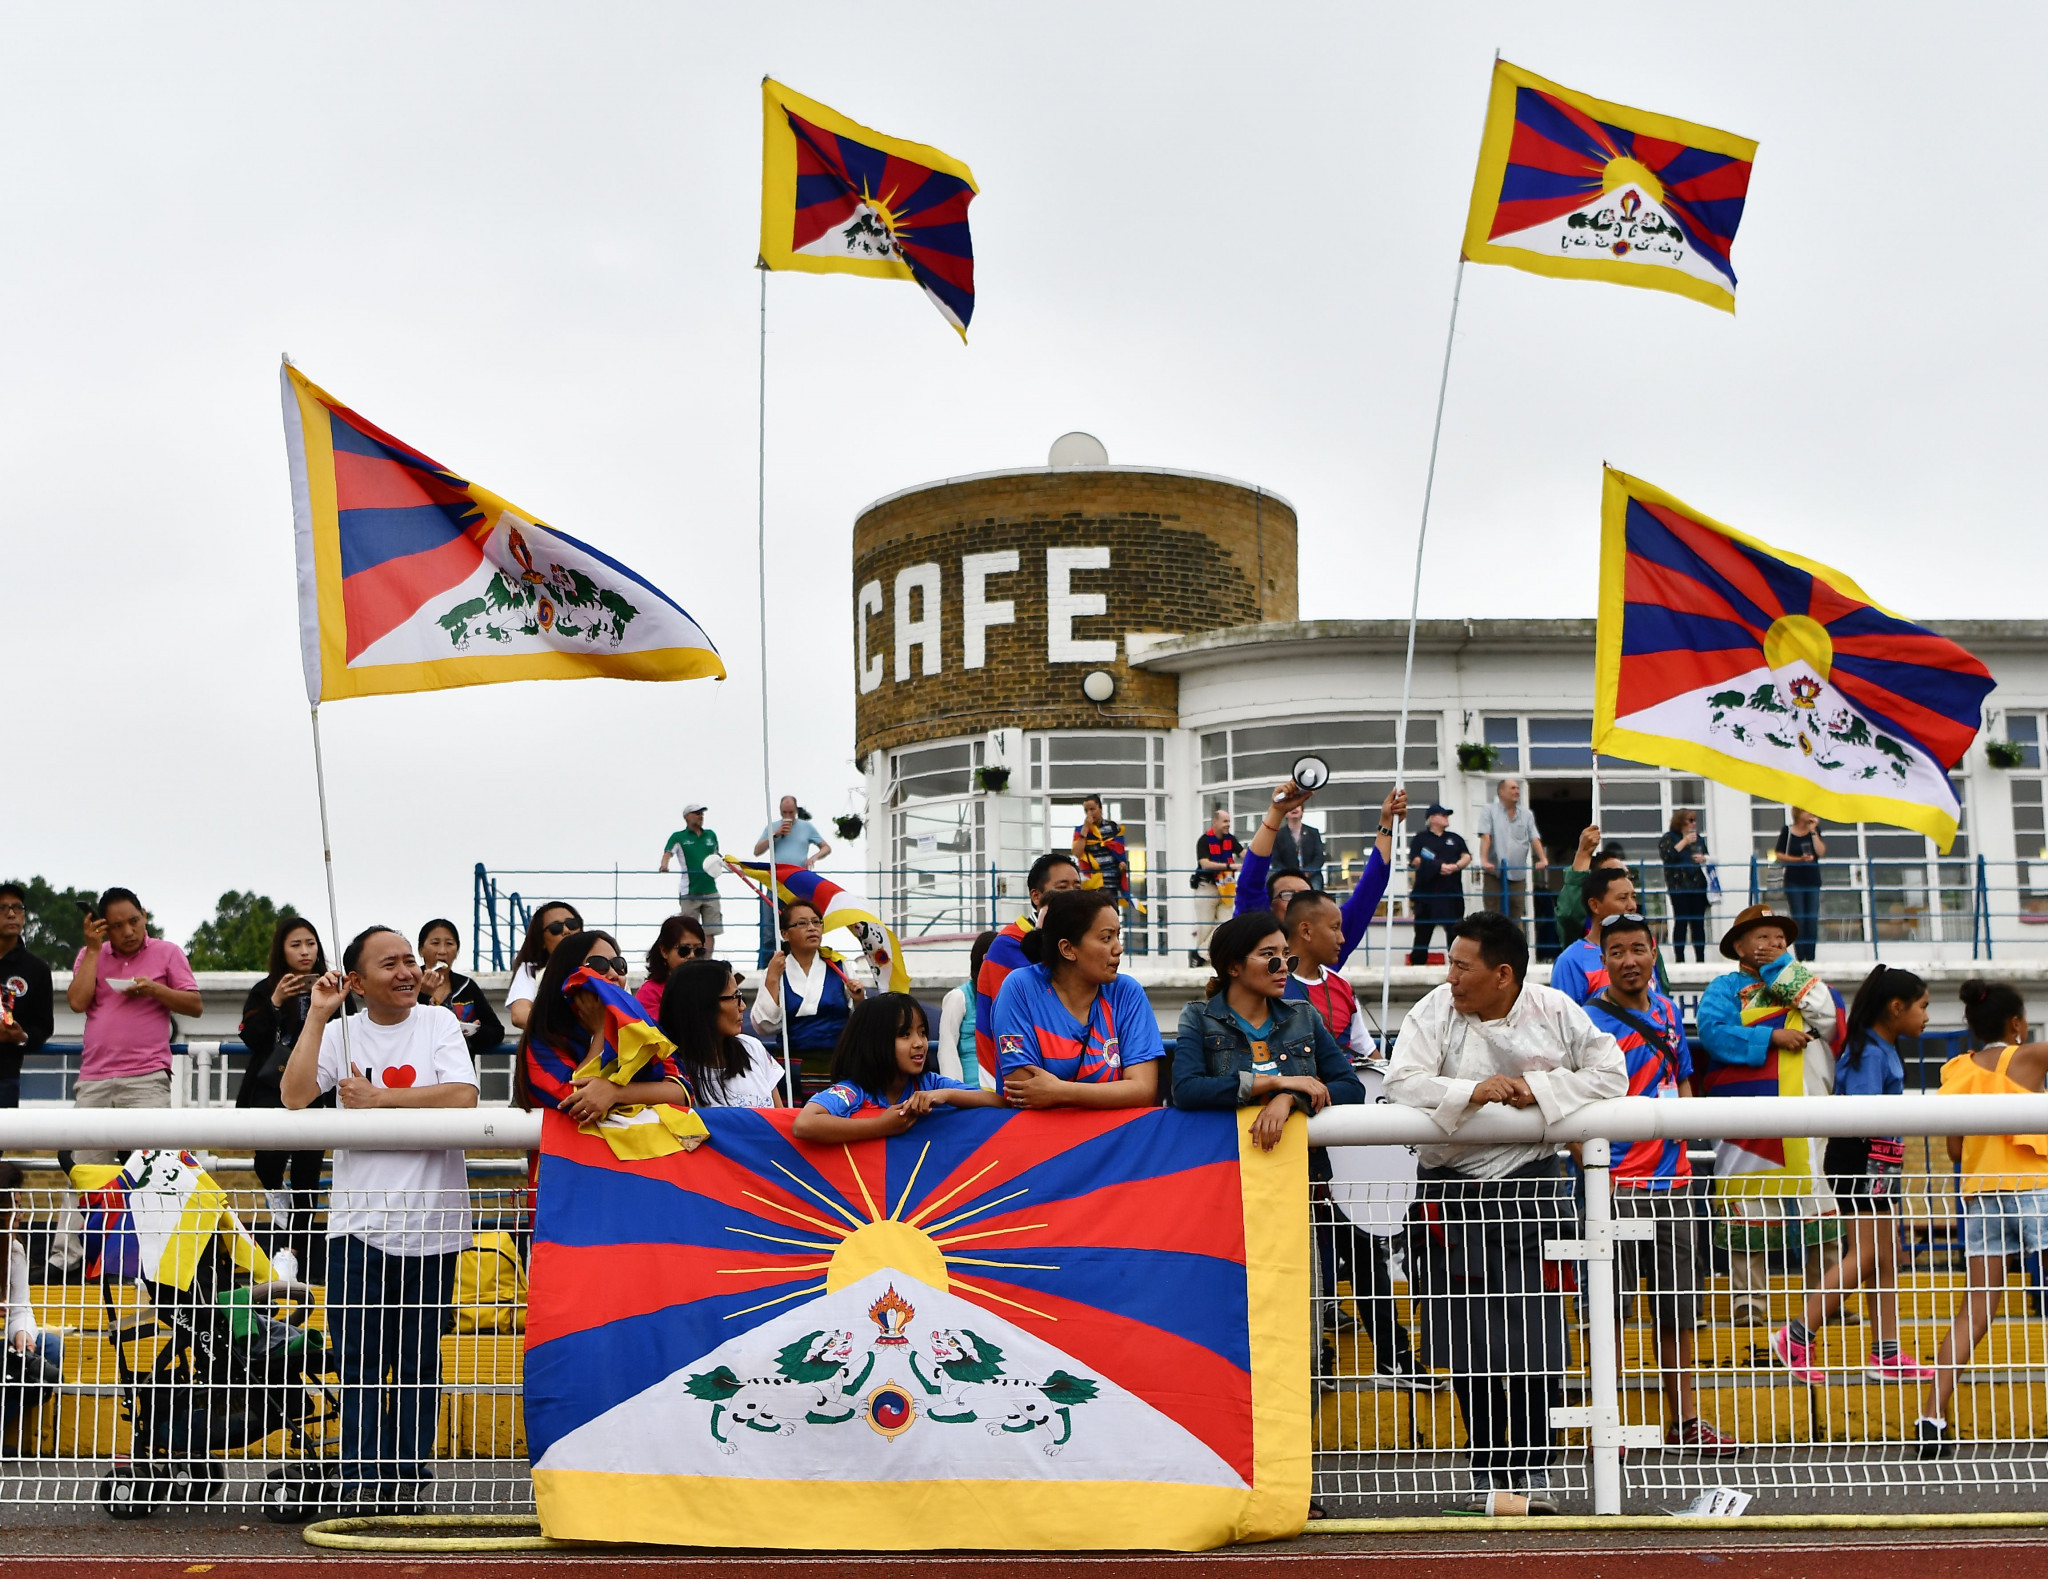 The event is for football federations from outside of FIFA, such as Tibet ©Getty Images